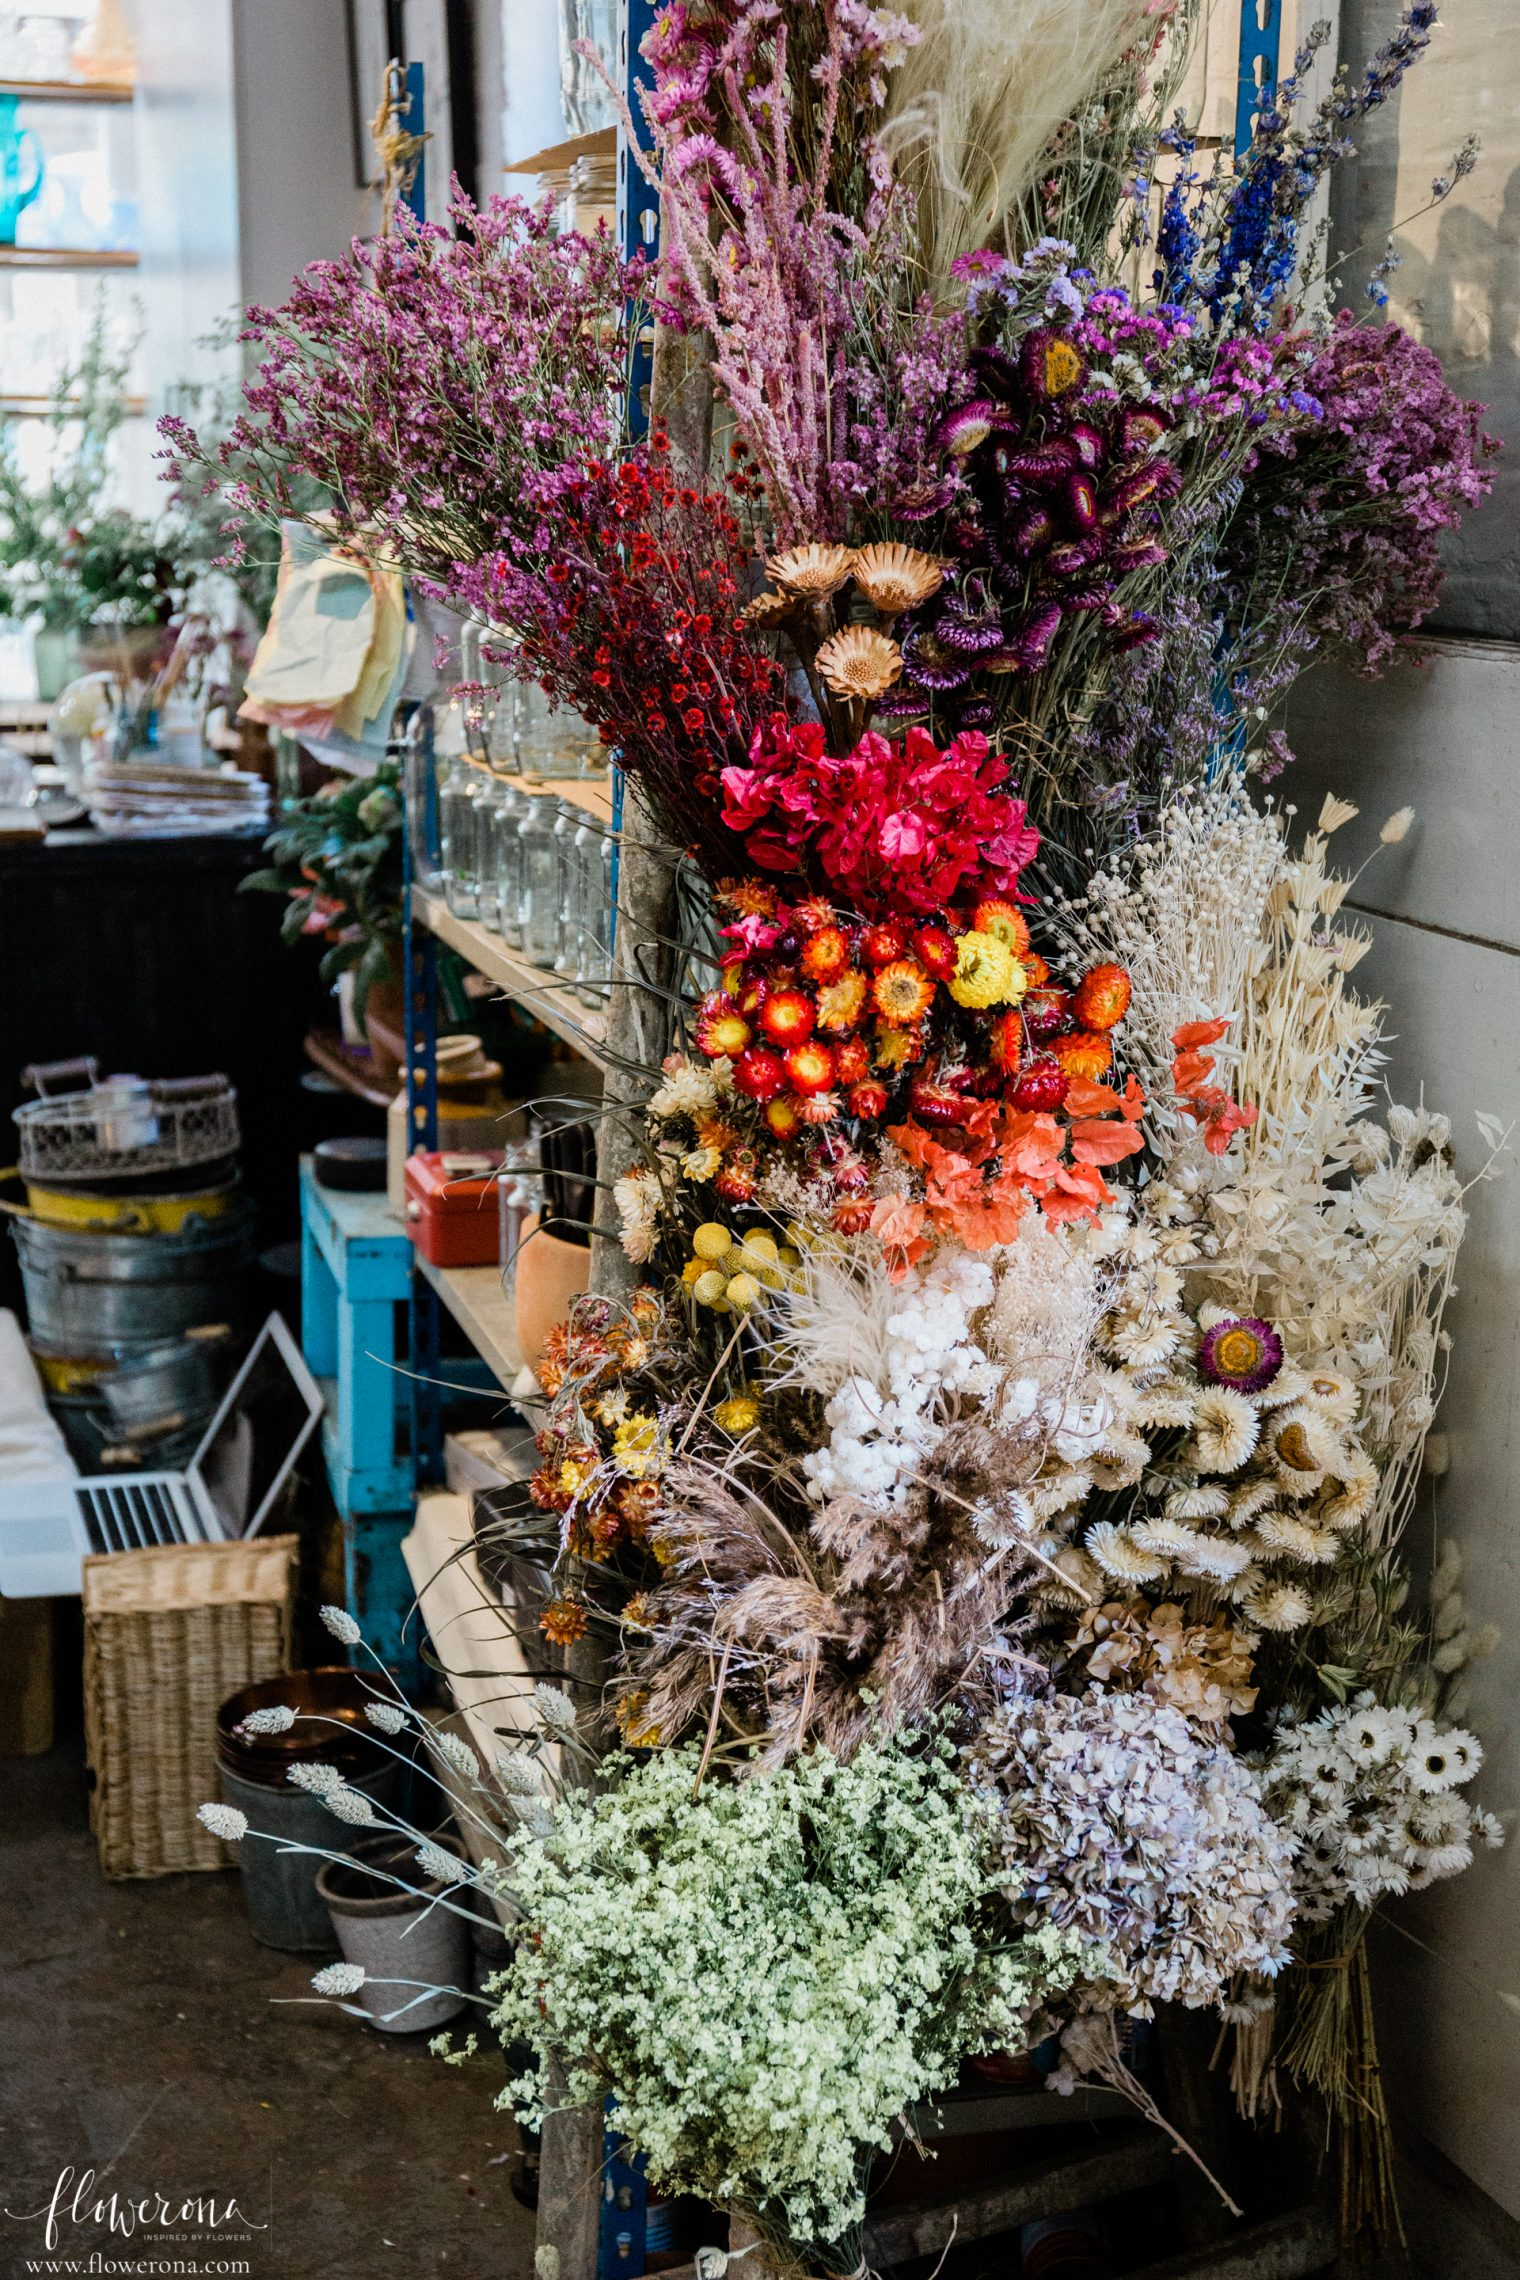 Dried Flowers at the JamJar Flowers Studio